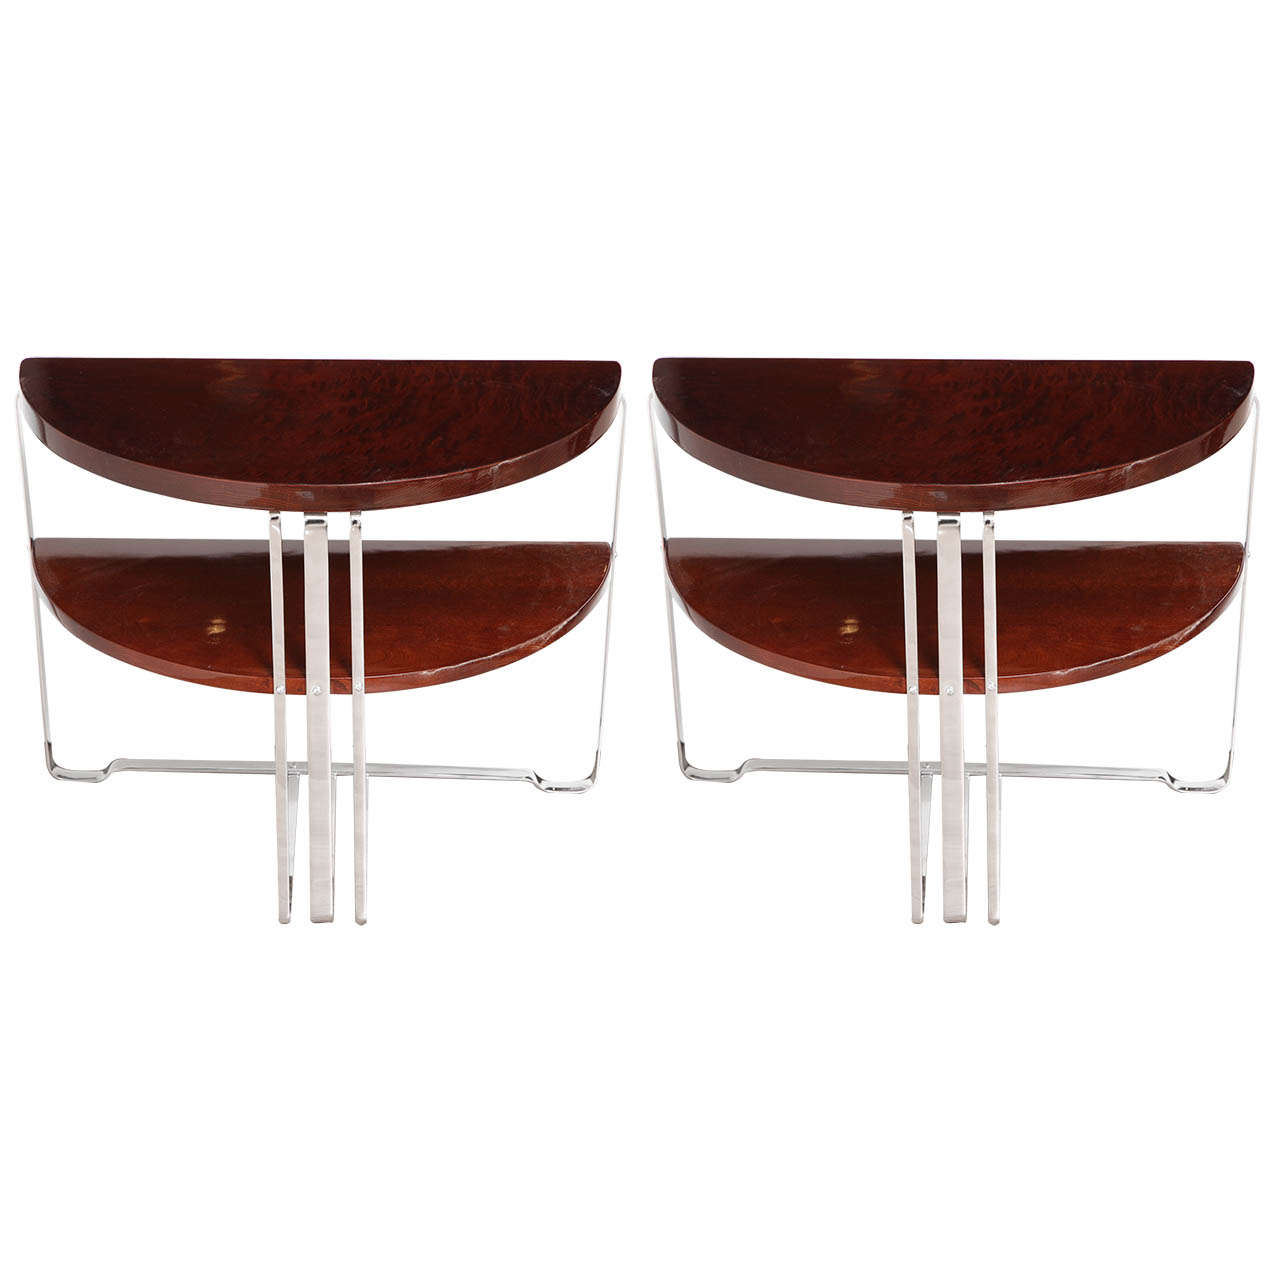 Half Circle Wall Table Lovable Modern Kitchen Design With